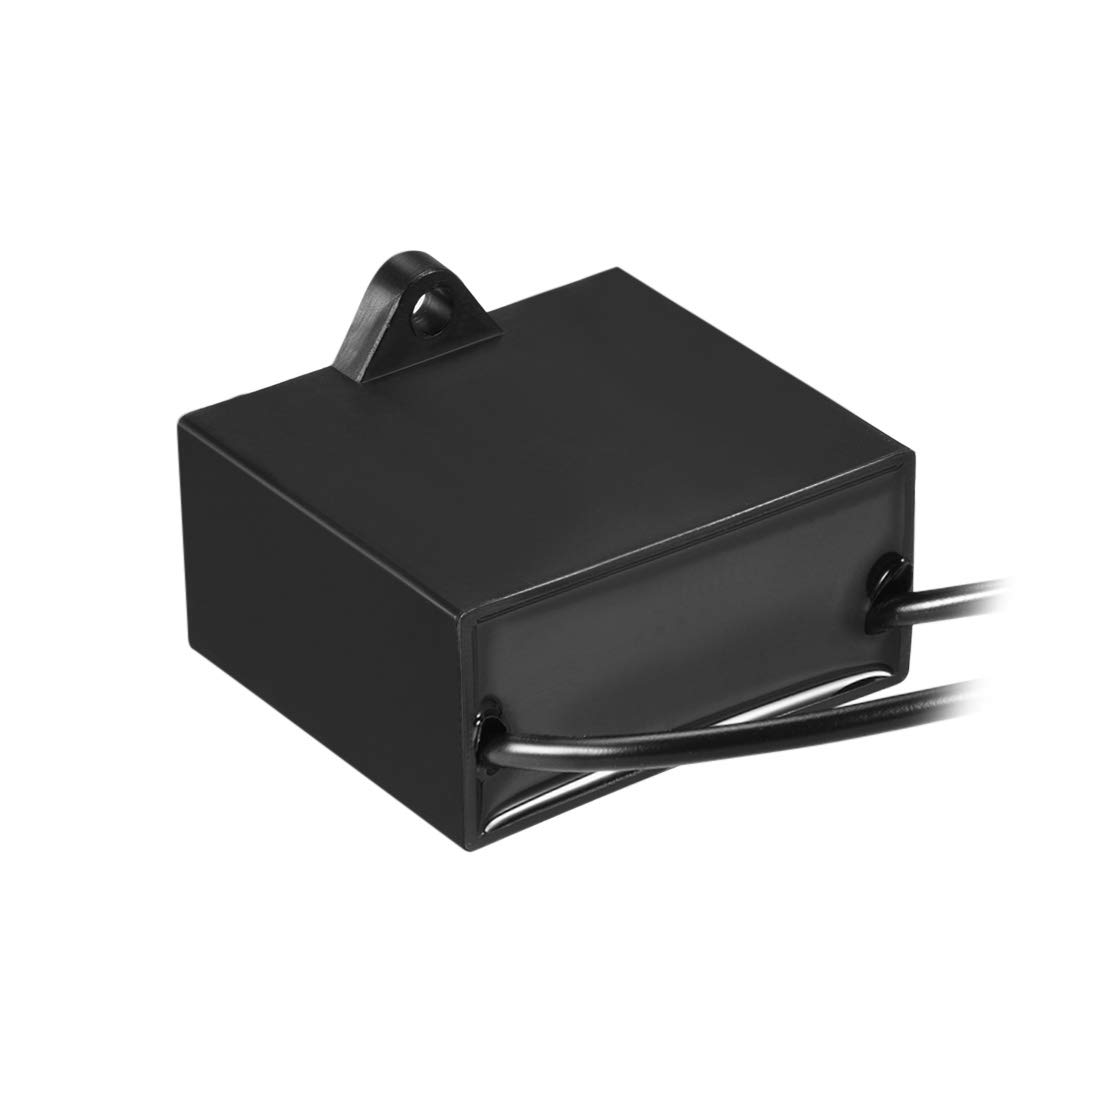 uxcell CBB61 Run Capacitor 450V AC 10uF 2 Cable Metallized Polypropylene Film Capacitors for Ceiling Fan